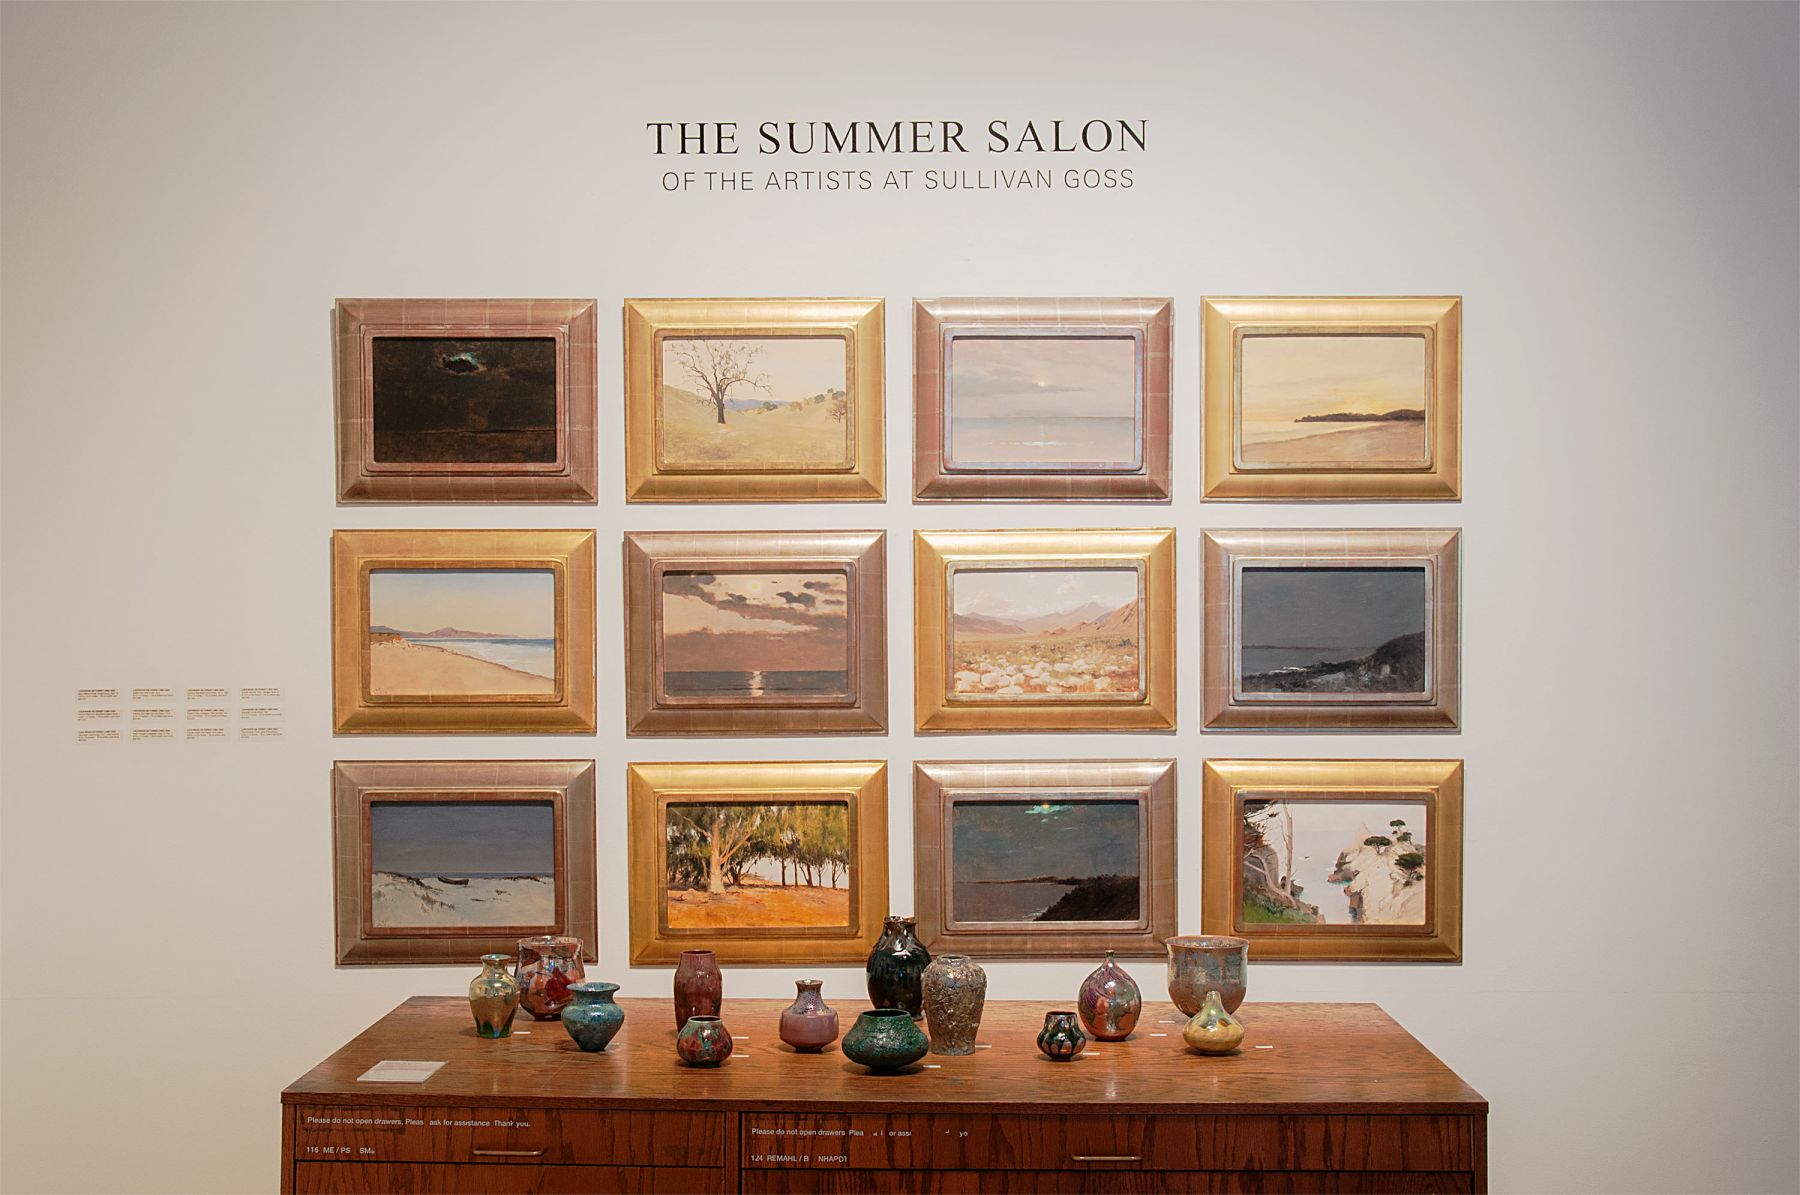 THE SUMMER SALON, 2019 installation photograph with Lockwood de Forest and James and Linda Haggerty